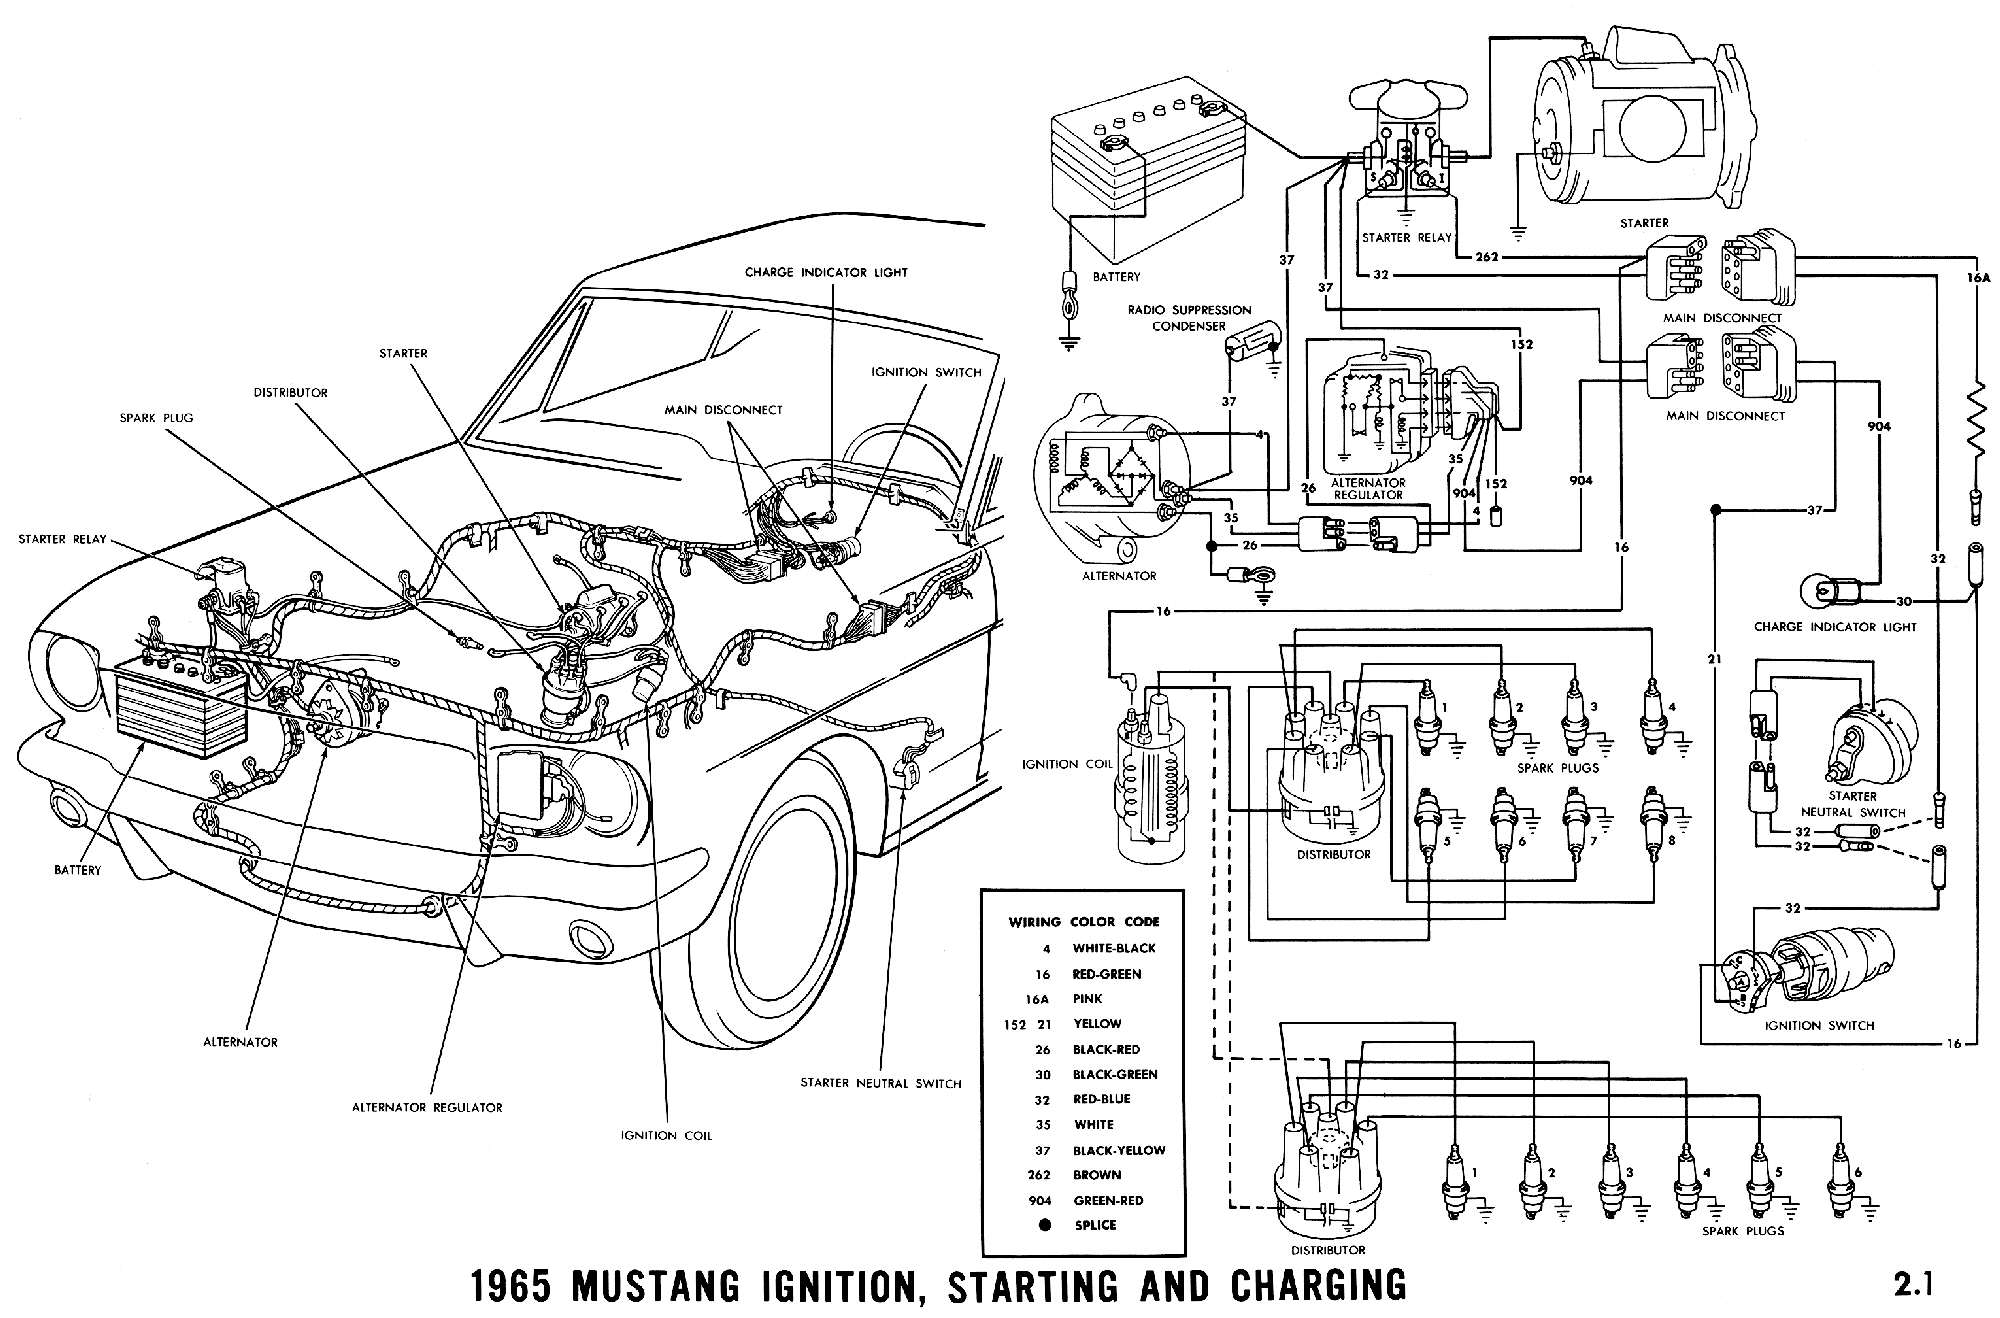 1965c 1965 mustang wiring diagrams average joe restoration 68 mustang headlight wiring diagram at edmiracle.co